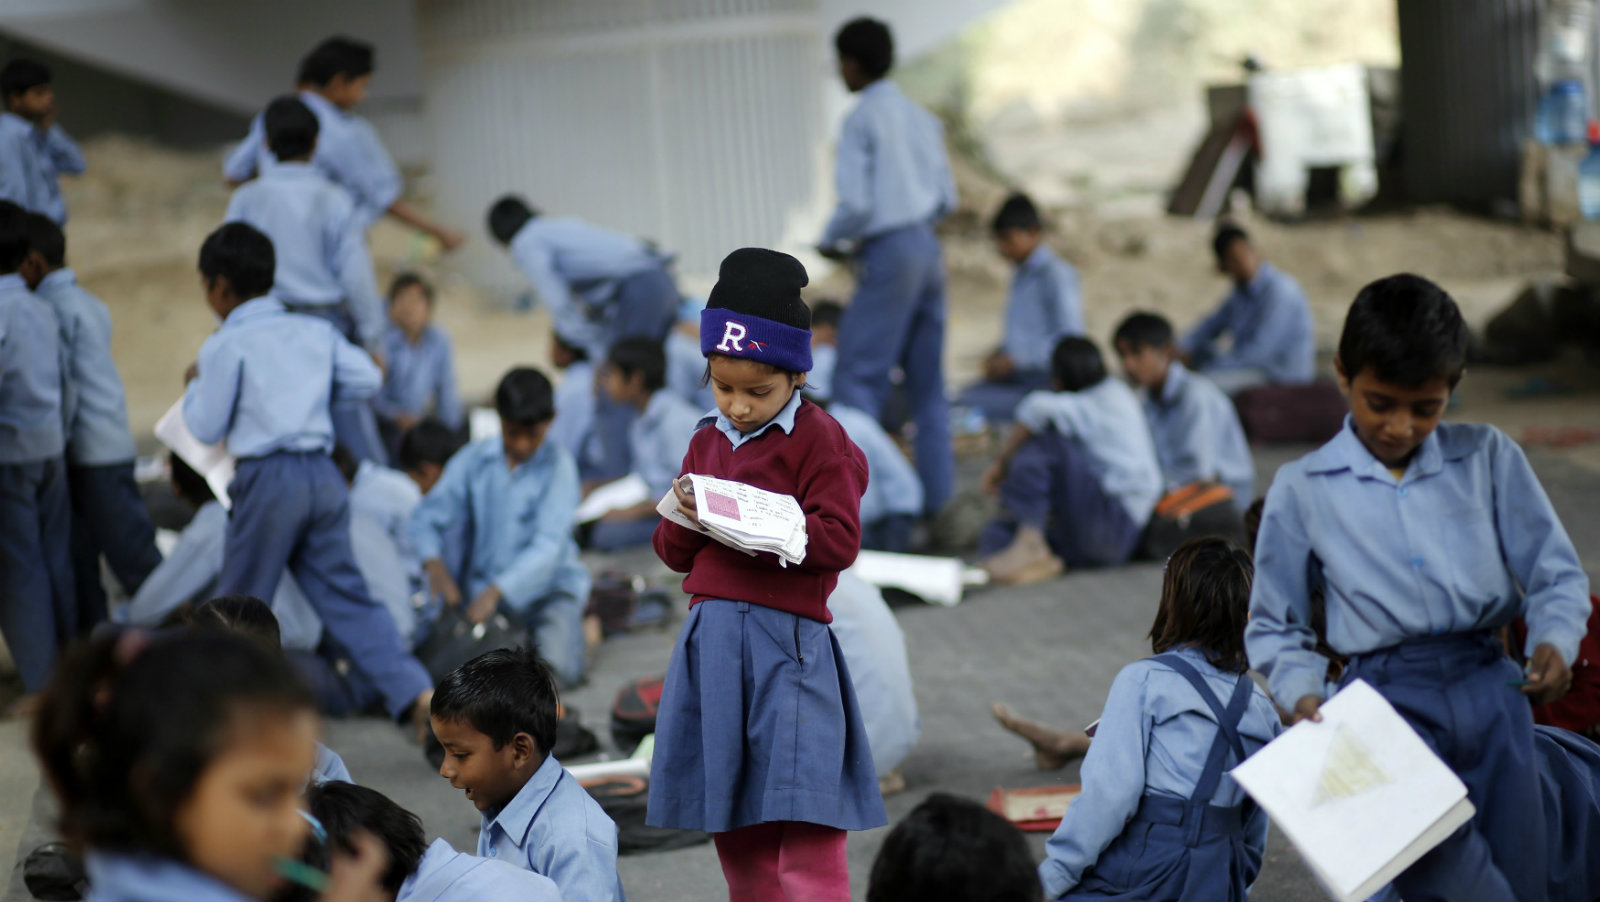 A schoolgirl reads from a textbook at an open-air school in New Delhi November 20, 2014. Picture taken November 20.